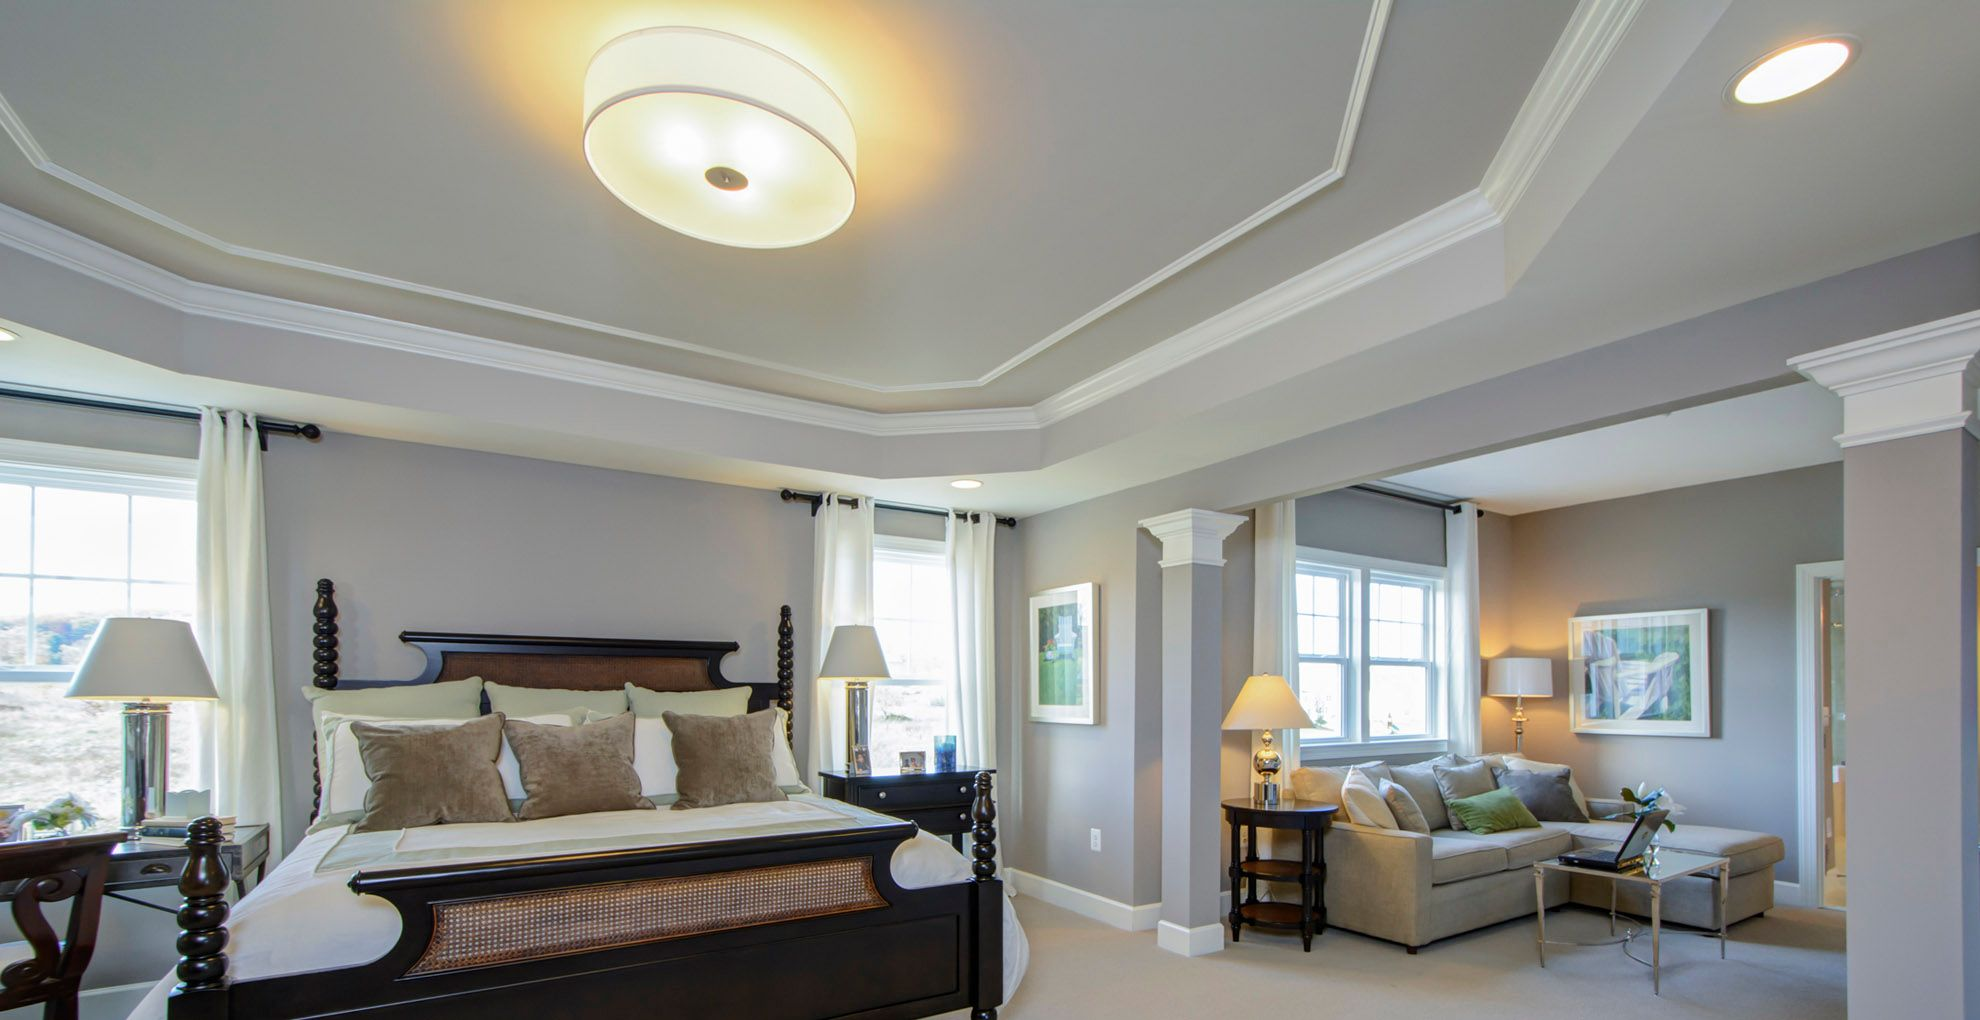 Bedroom featured in the Colton II By Stanley Martin Homes in Charlottesville, VA